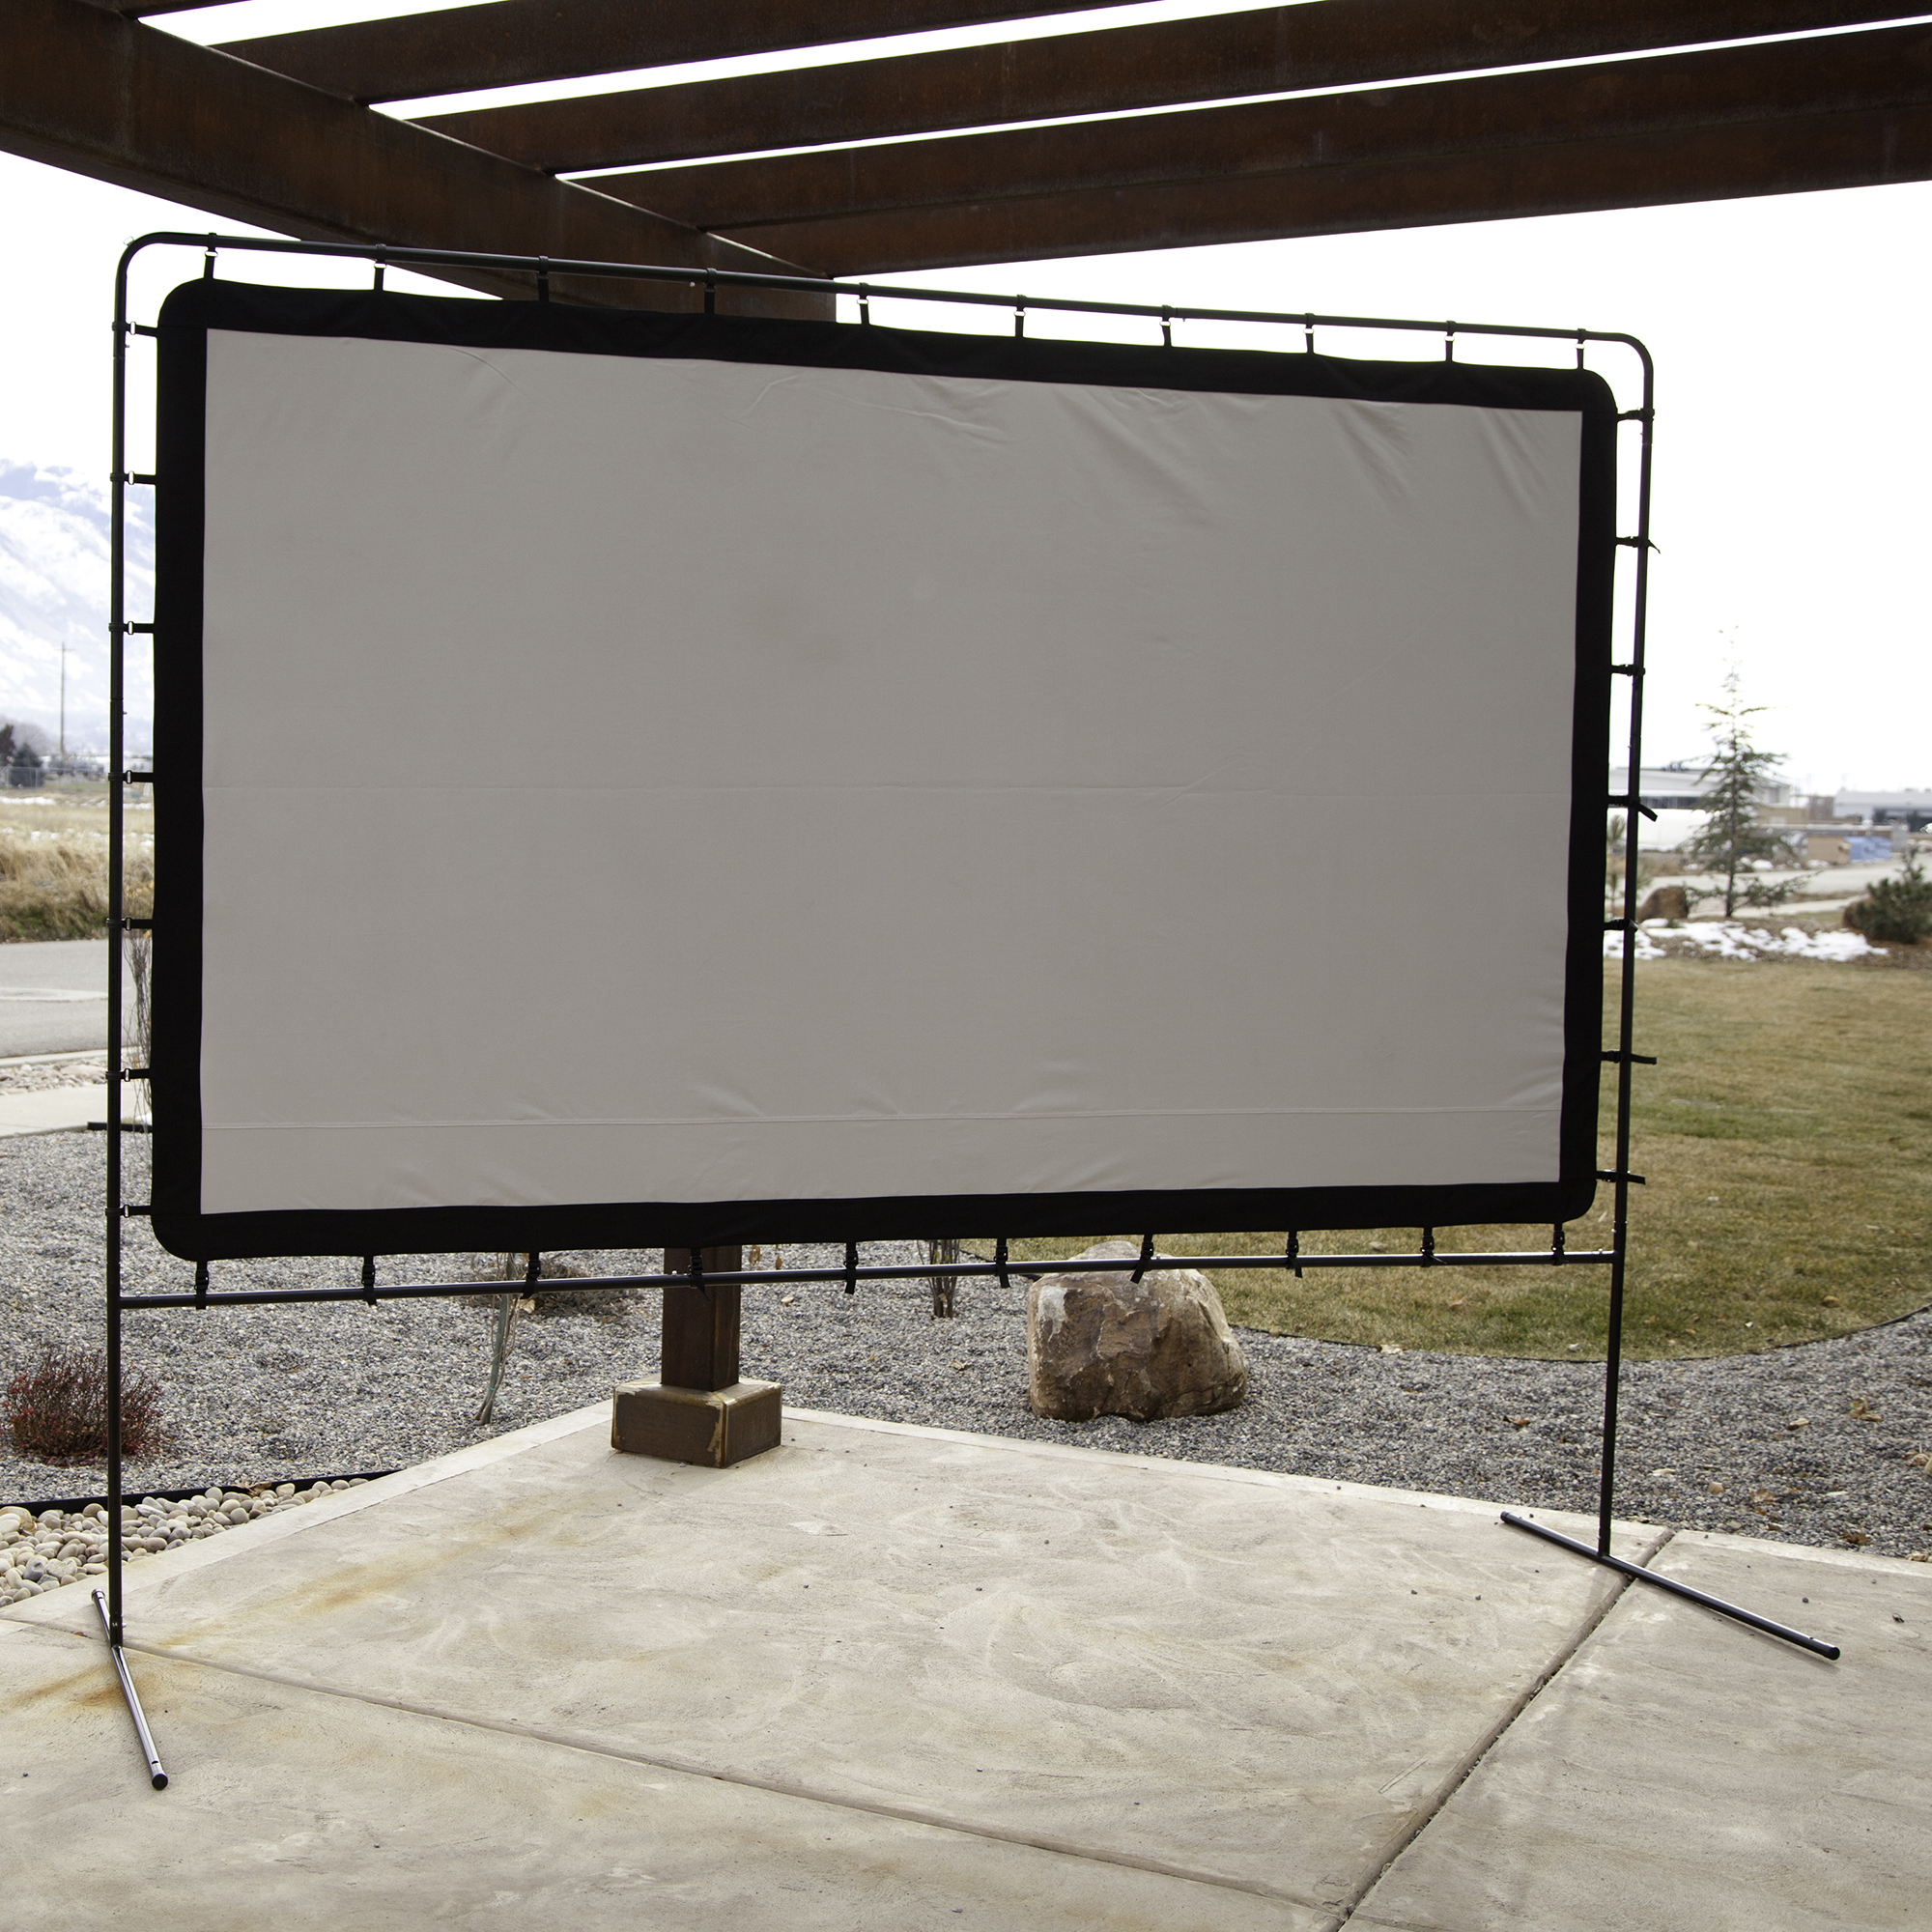 Camp Chef 144 Giant Indoor Or Outdoor Nylon Backyard Movie Projector Screen